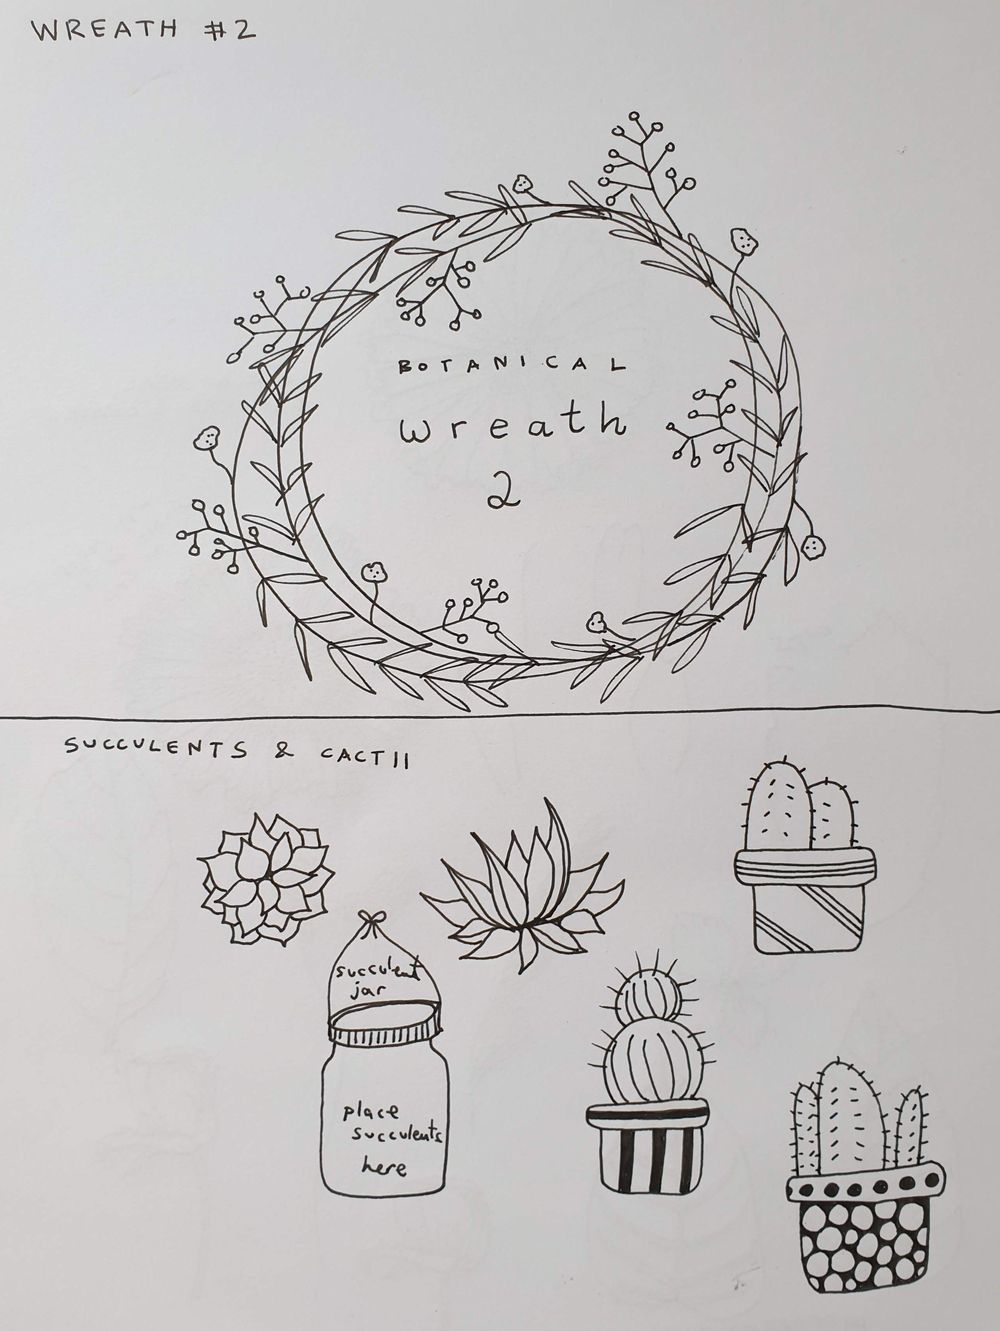 Botanical Line Drawing - image 4 - student project